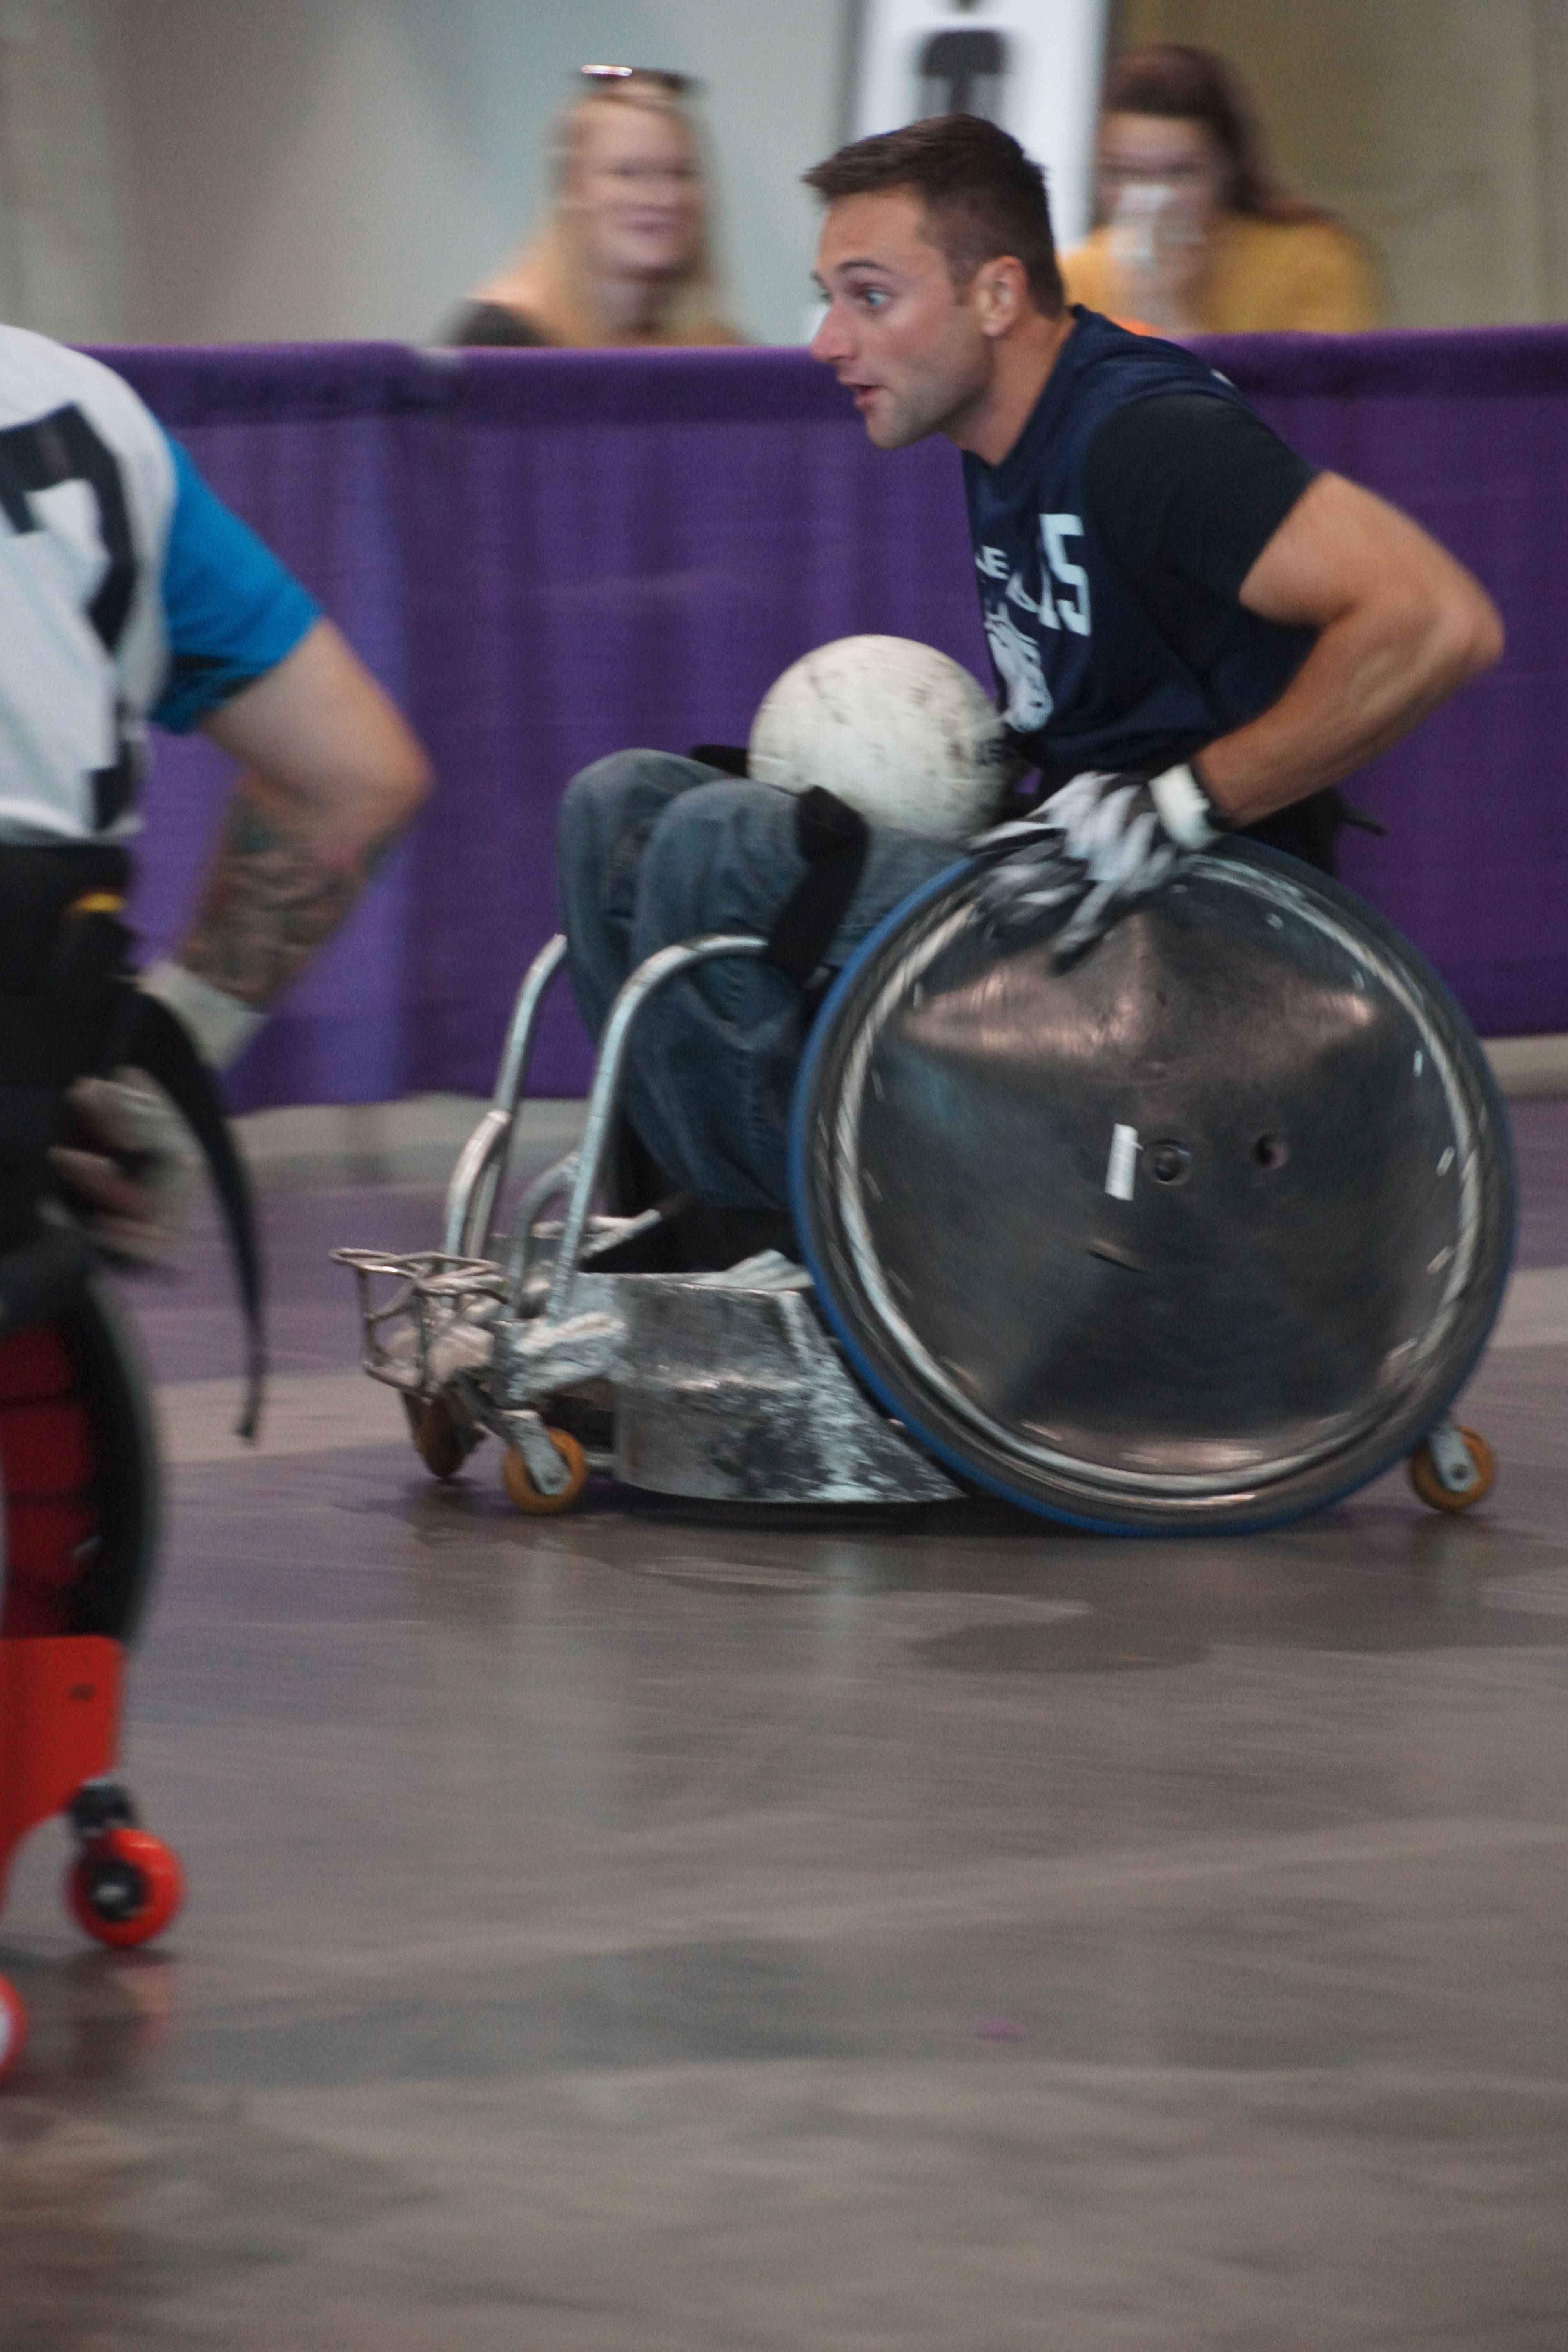 Attendees push their limits in quad rugby and other exciting adaptive sports at Abilities Expo.